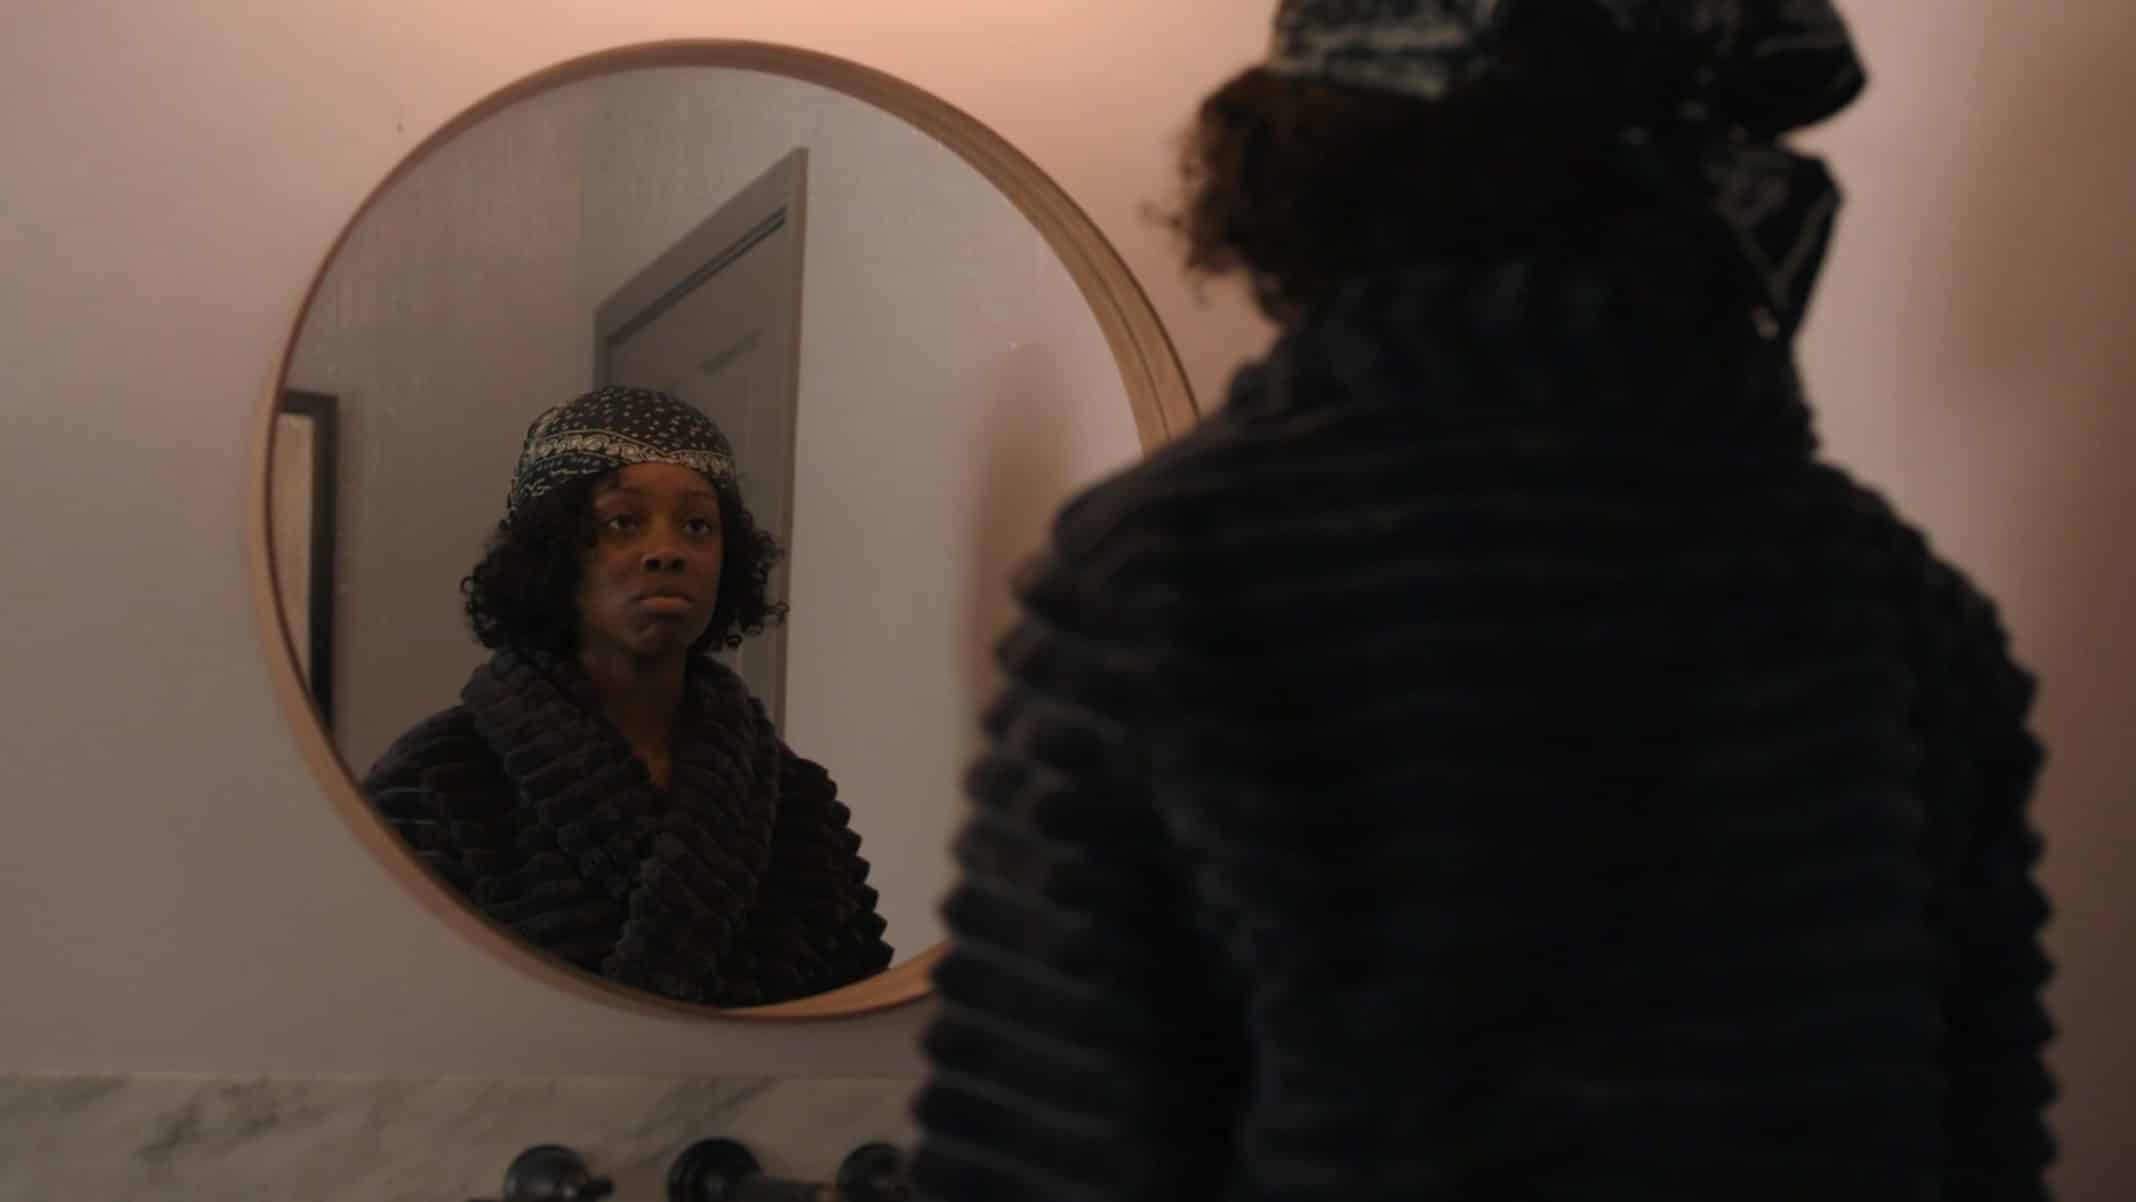 Kiesha looking into the mirror.